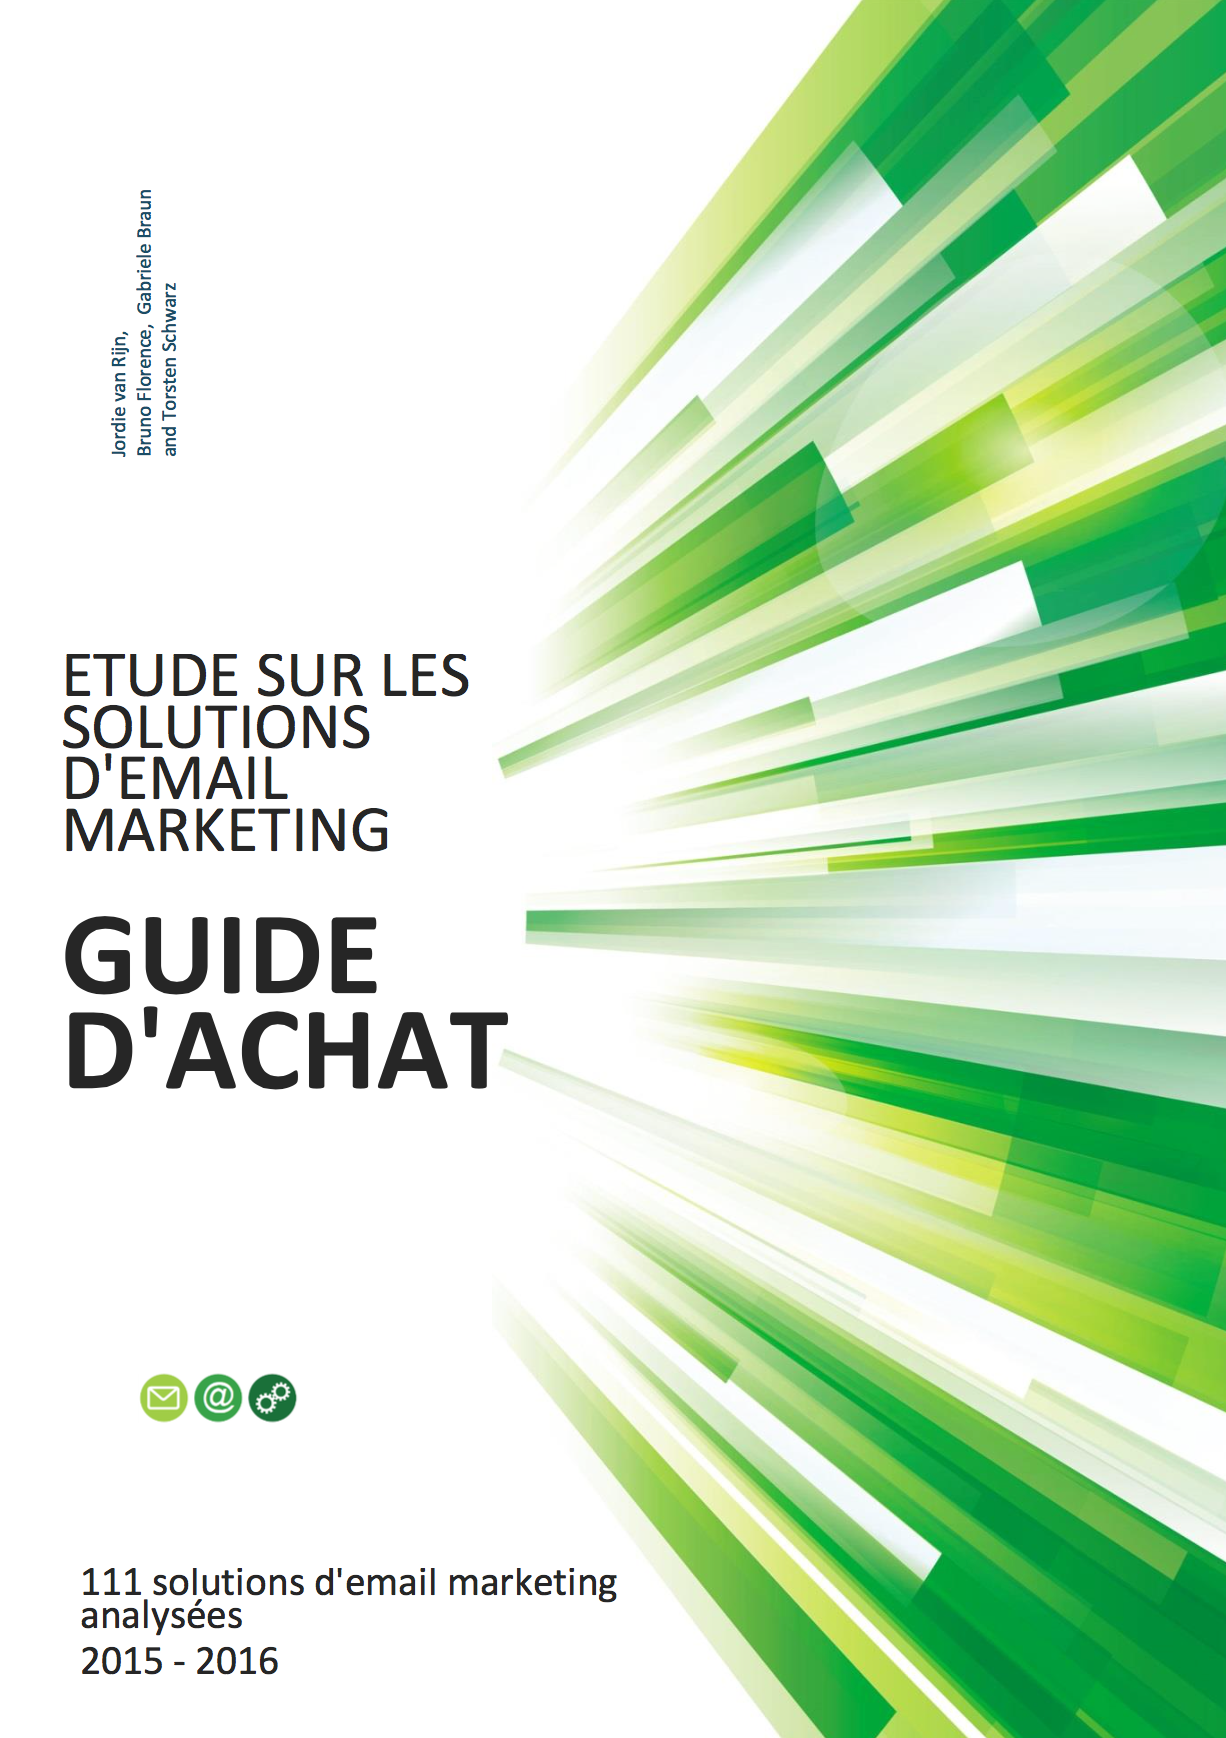 etude sur les solutions d'email marketing